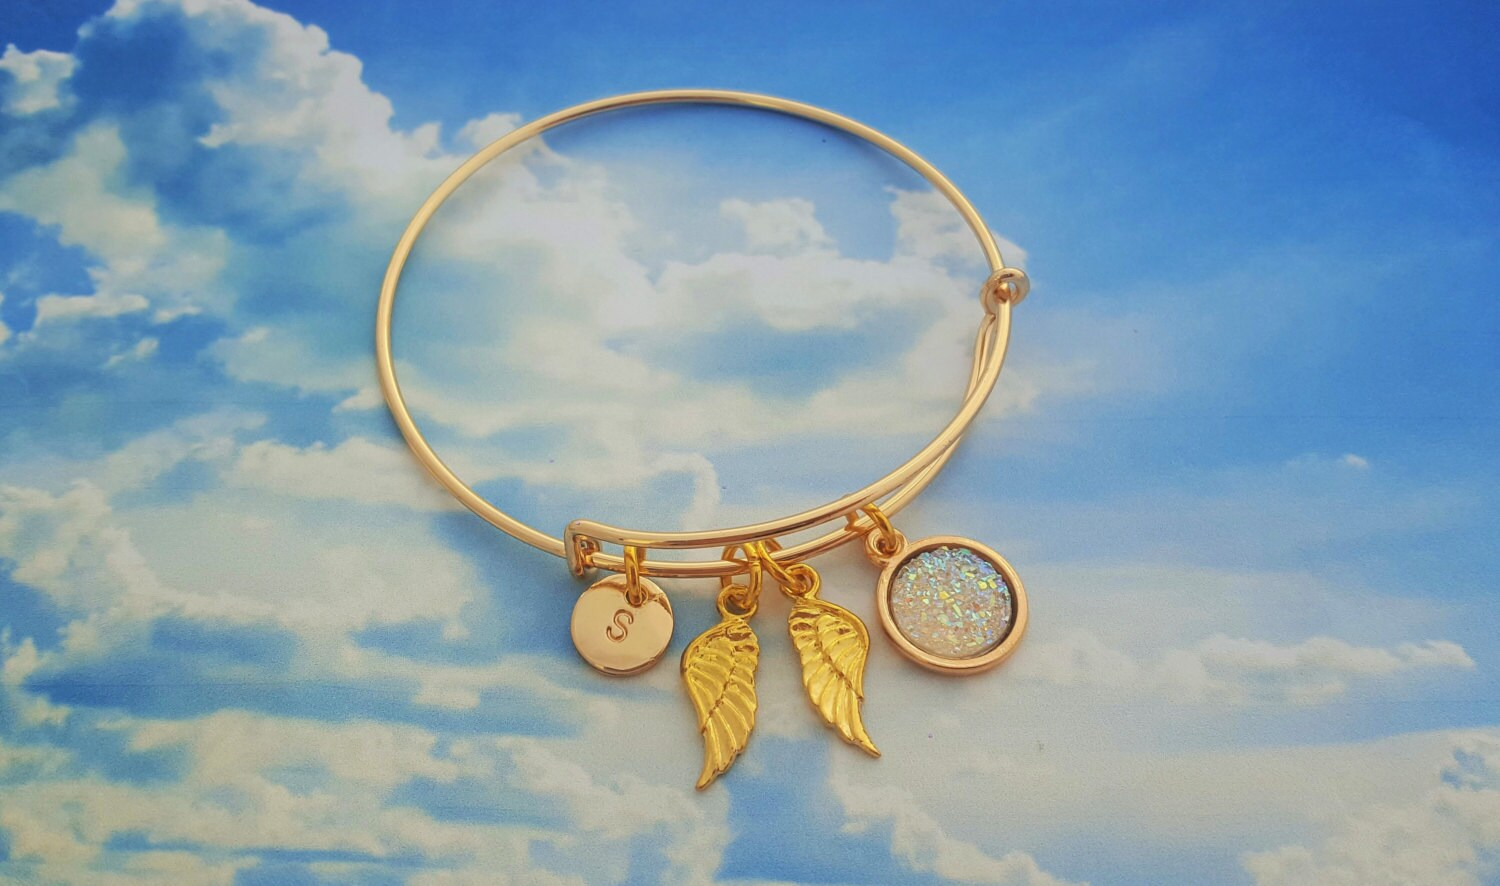 Gold Angel Bangle Spiritual Jewellery Angel Charm Bracelet Loved One Memory Sparkly Bangle Memoriam Jewelry Gold Adjustable Bangles